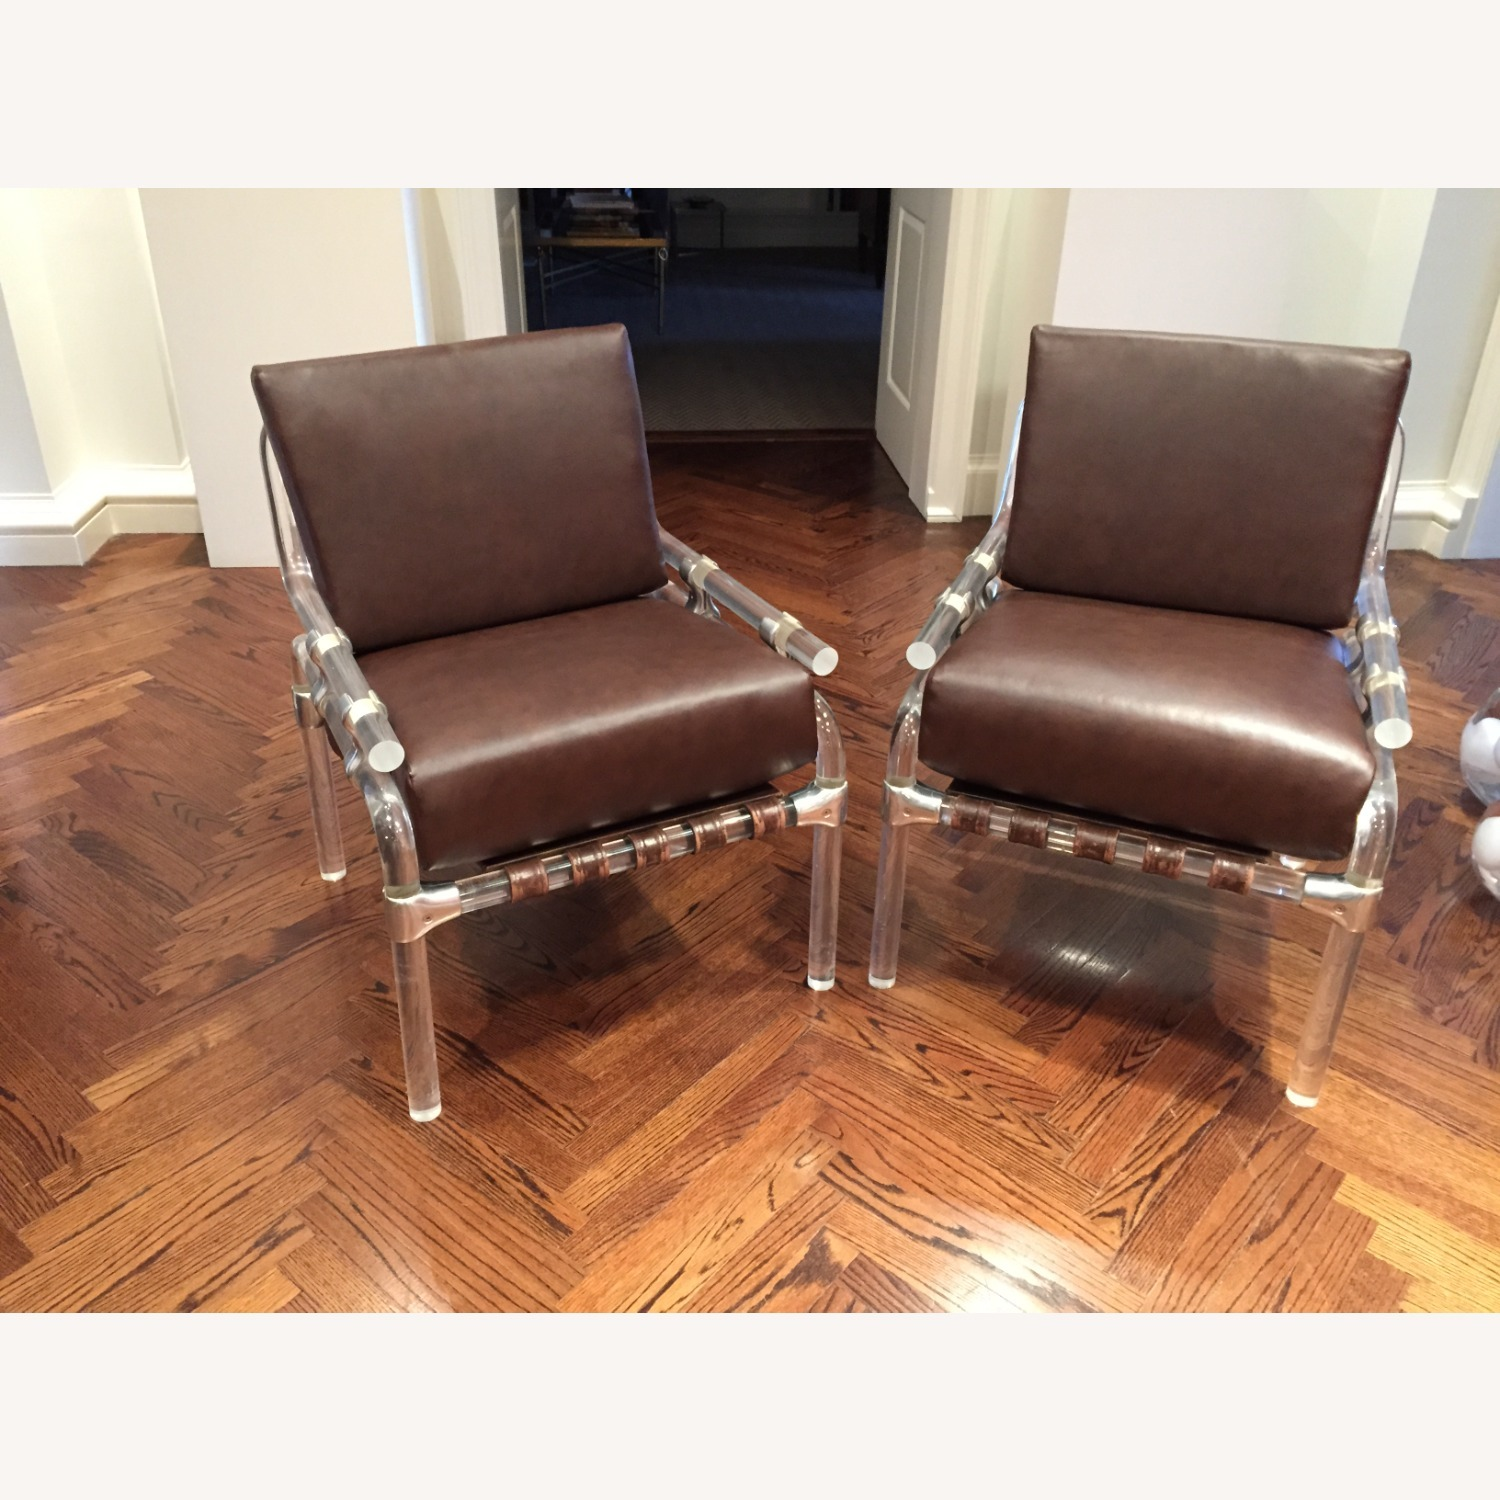 Pair of Pink Leather Jeff Messerschmidt Chairs - image-1